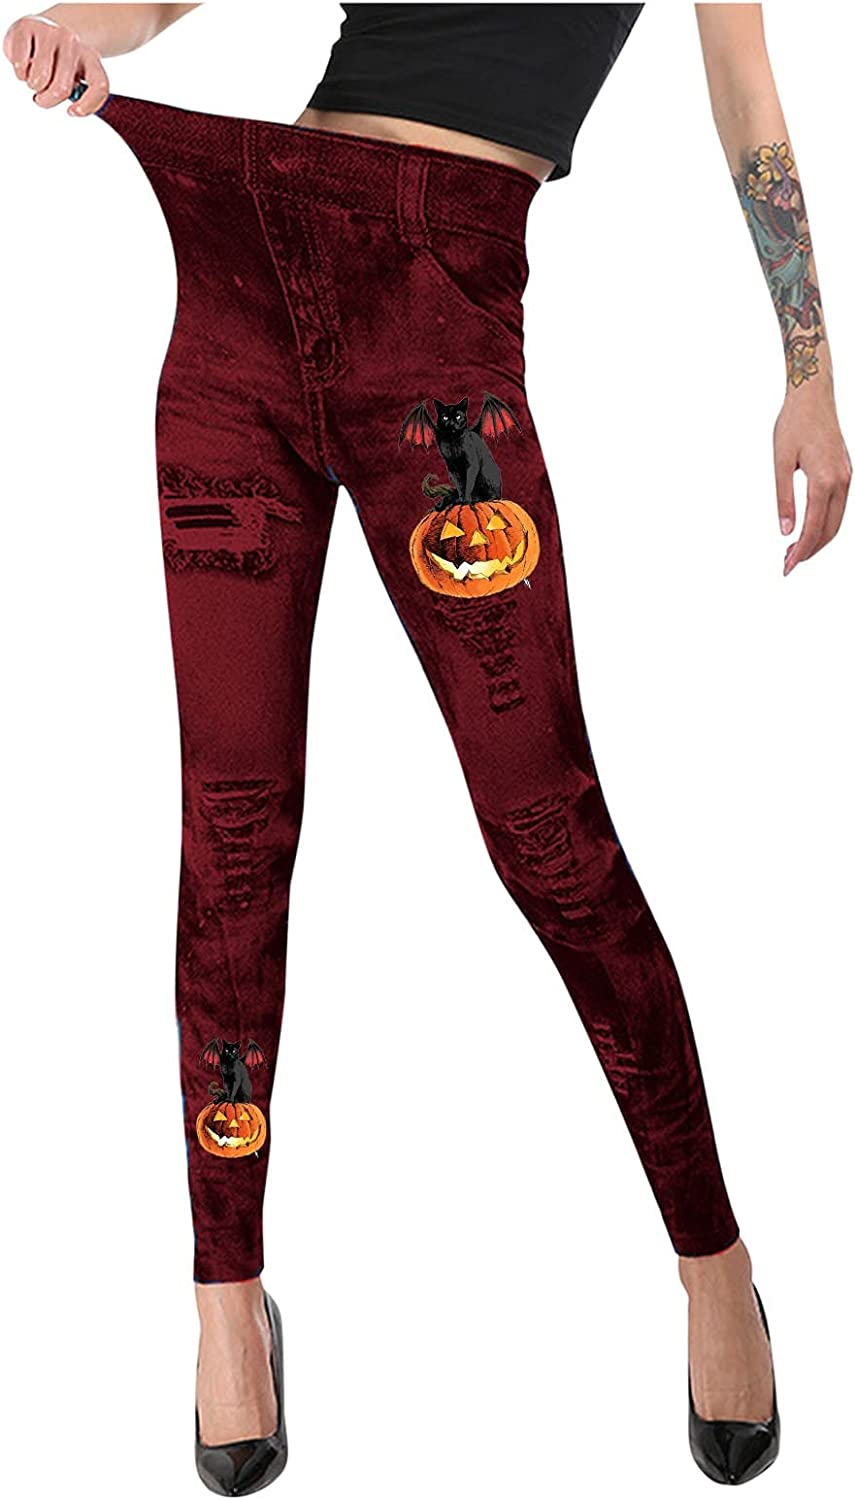 uikmnh Tummy Control Workout Hallween with Mail order Pockets Leggings Max 54% OFF High